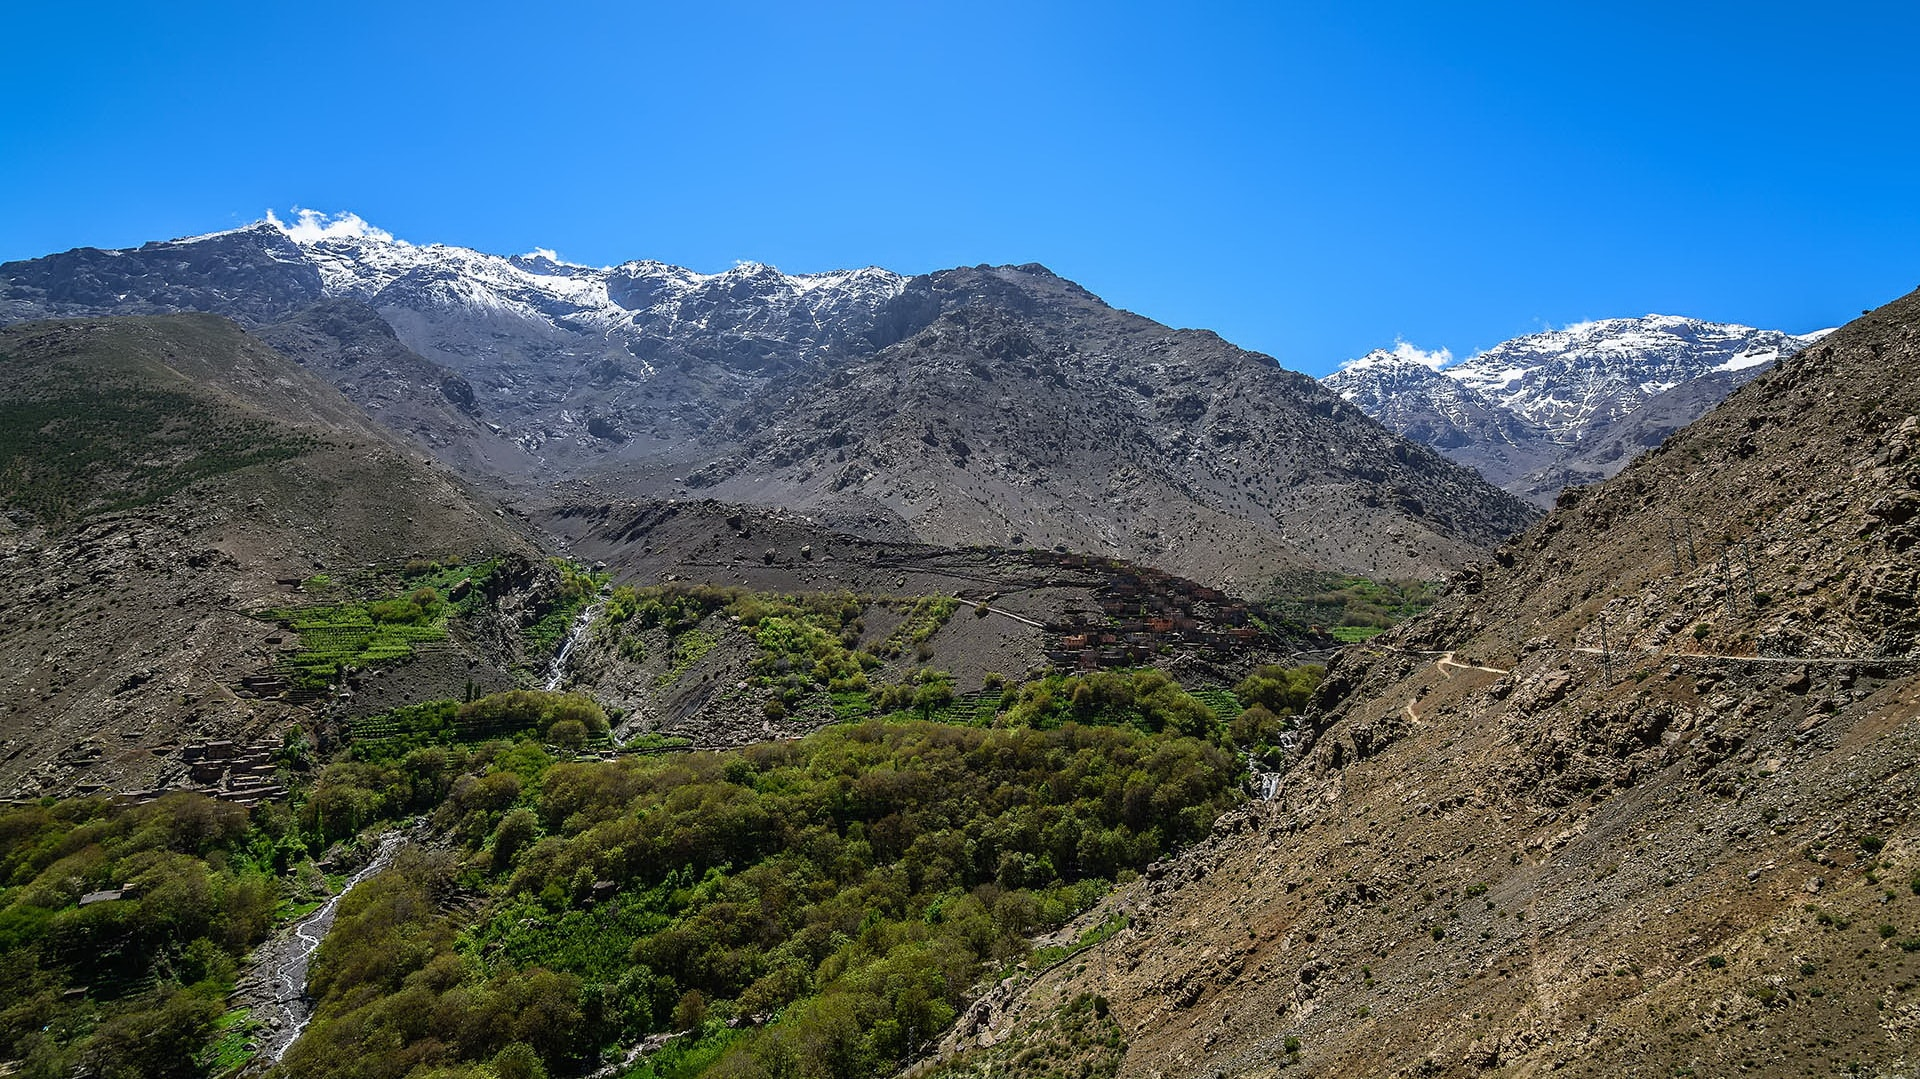 Pathfinders treks - day tour to Atlas mountains combined hiking and camel ride